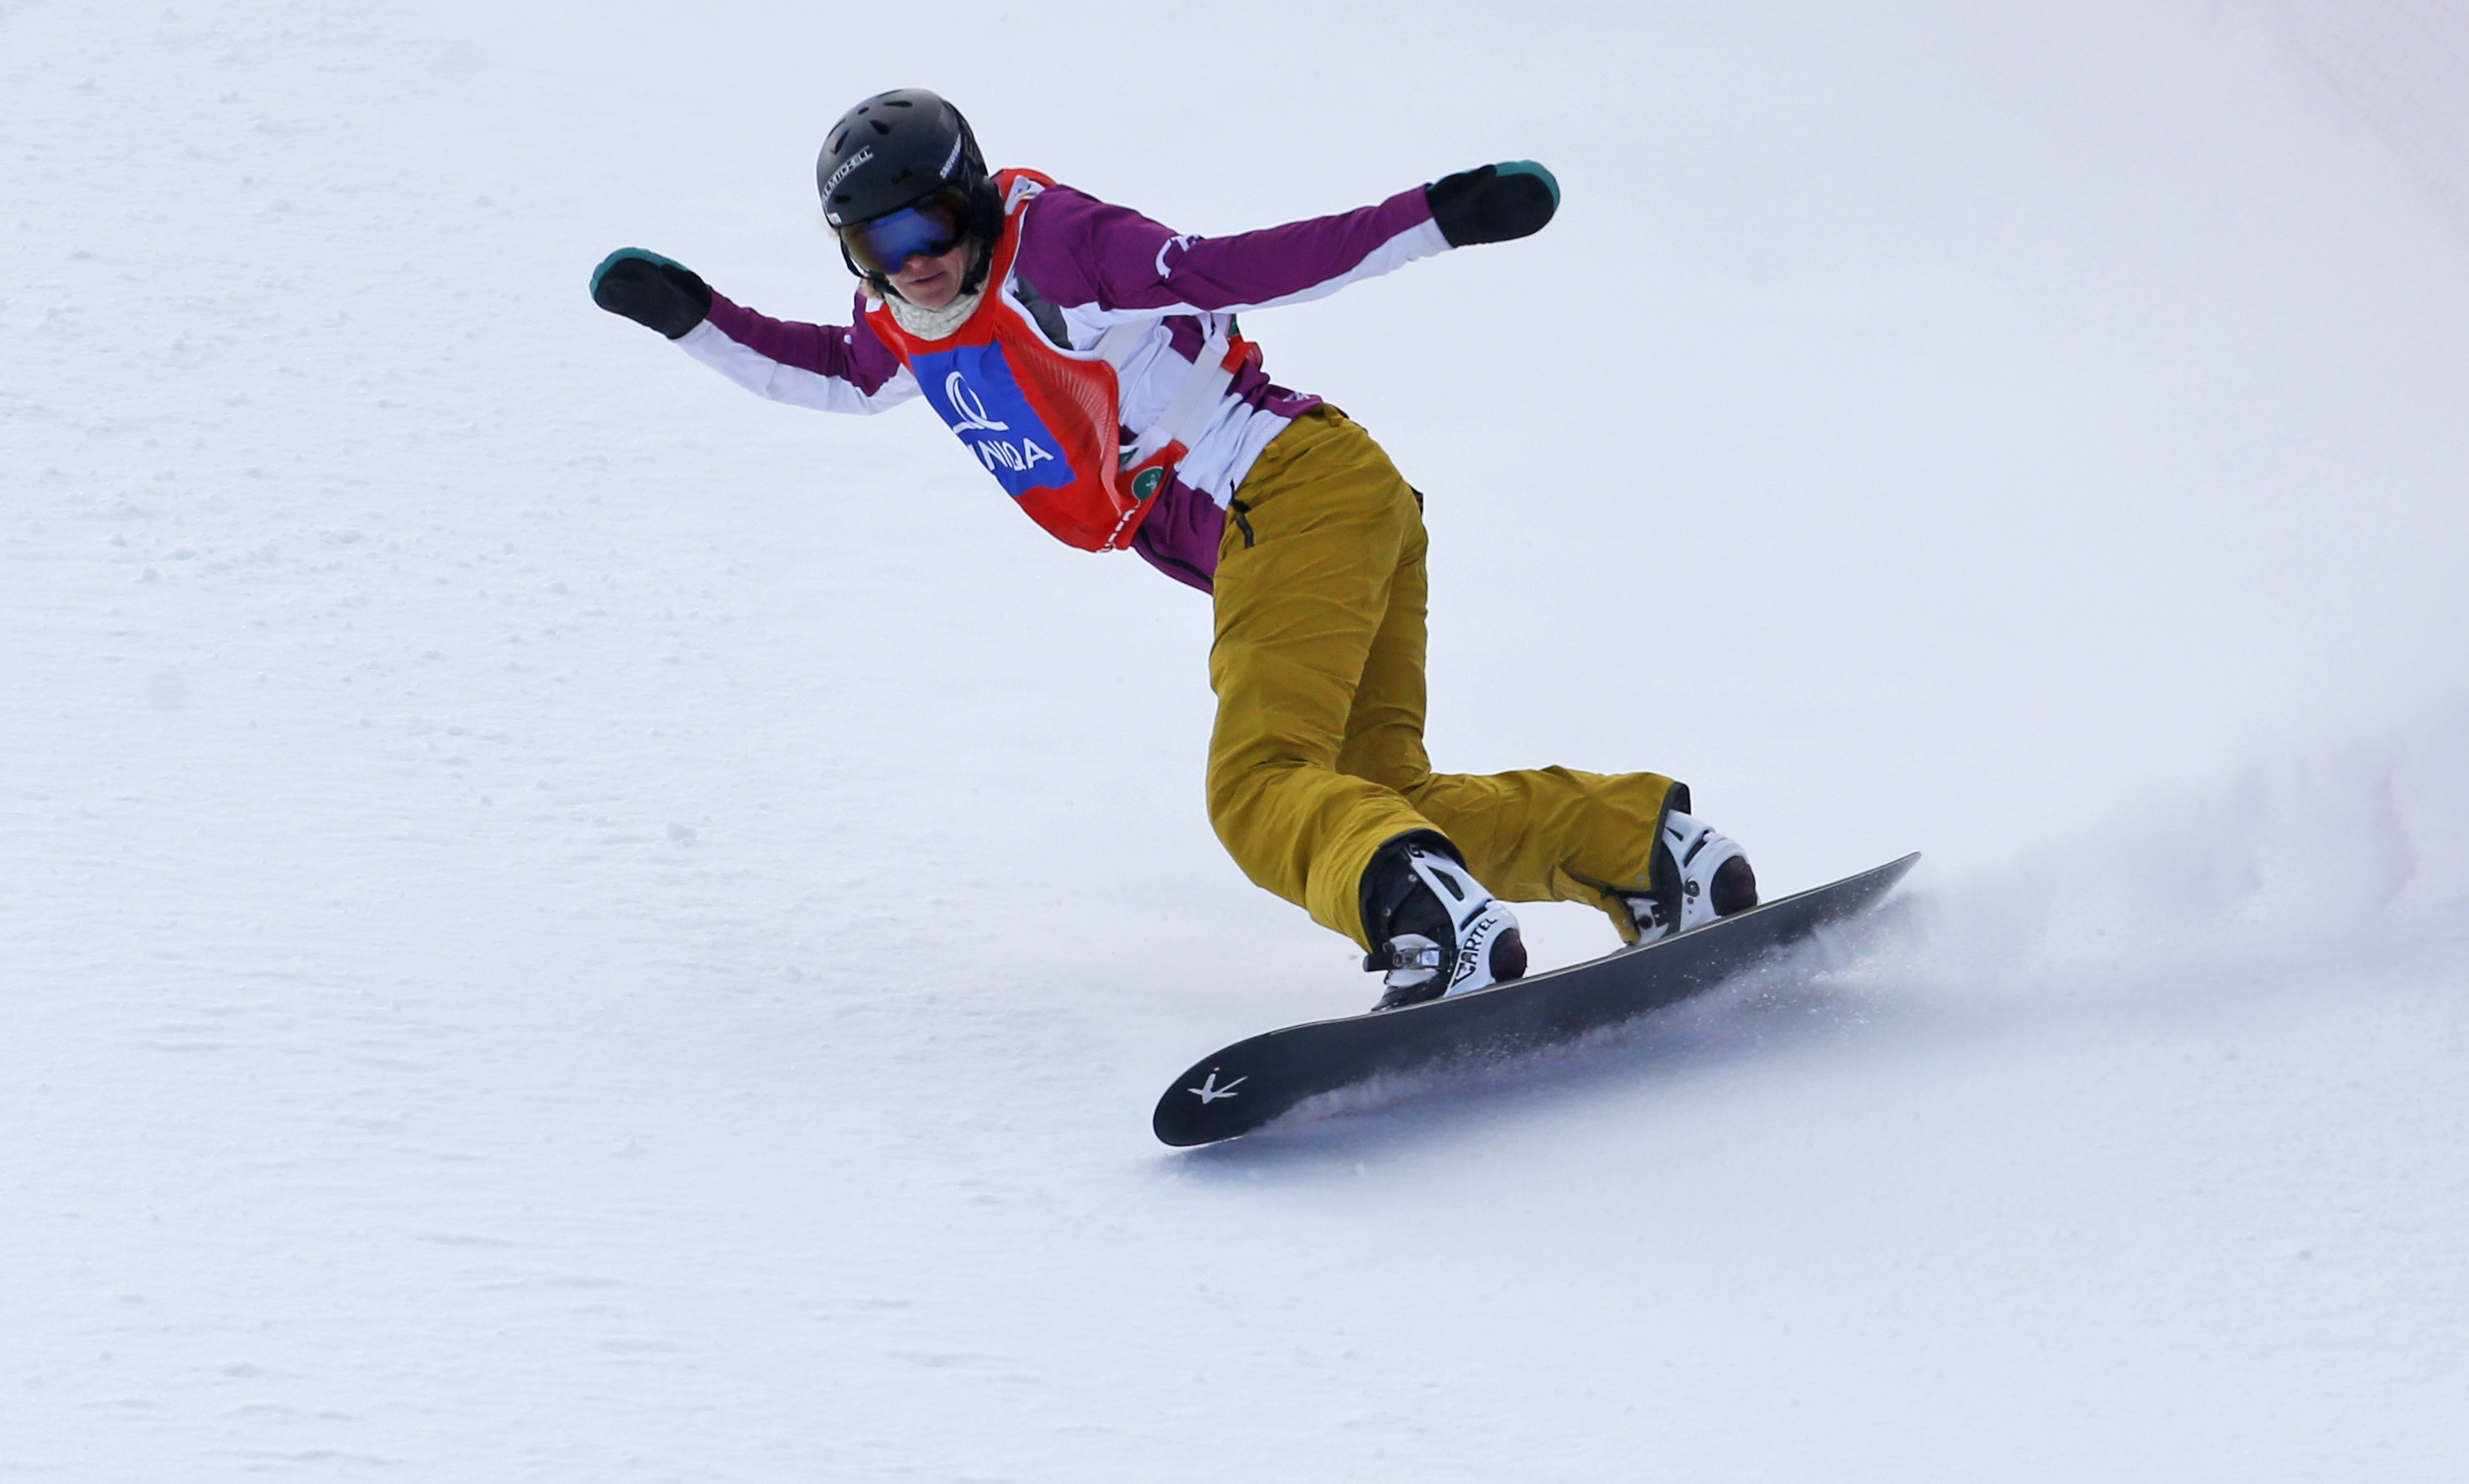 Lindsey Jacobellis from the U.S. competes to win the snowboard cross event at the Freestyle Ski and Snowboard World Championships in Kreischberg, Austria, Jan. 16, 2015.